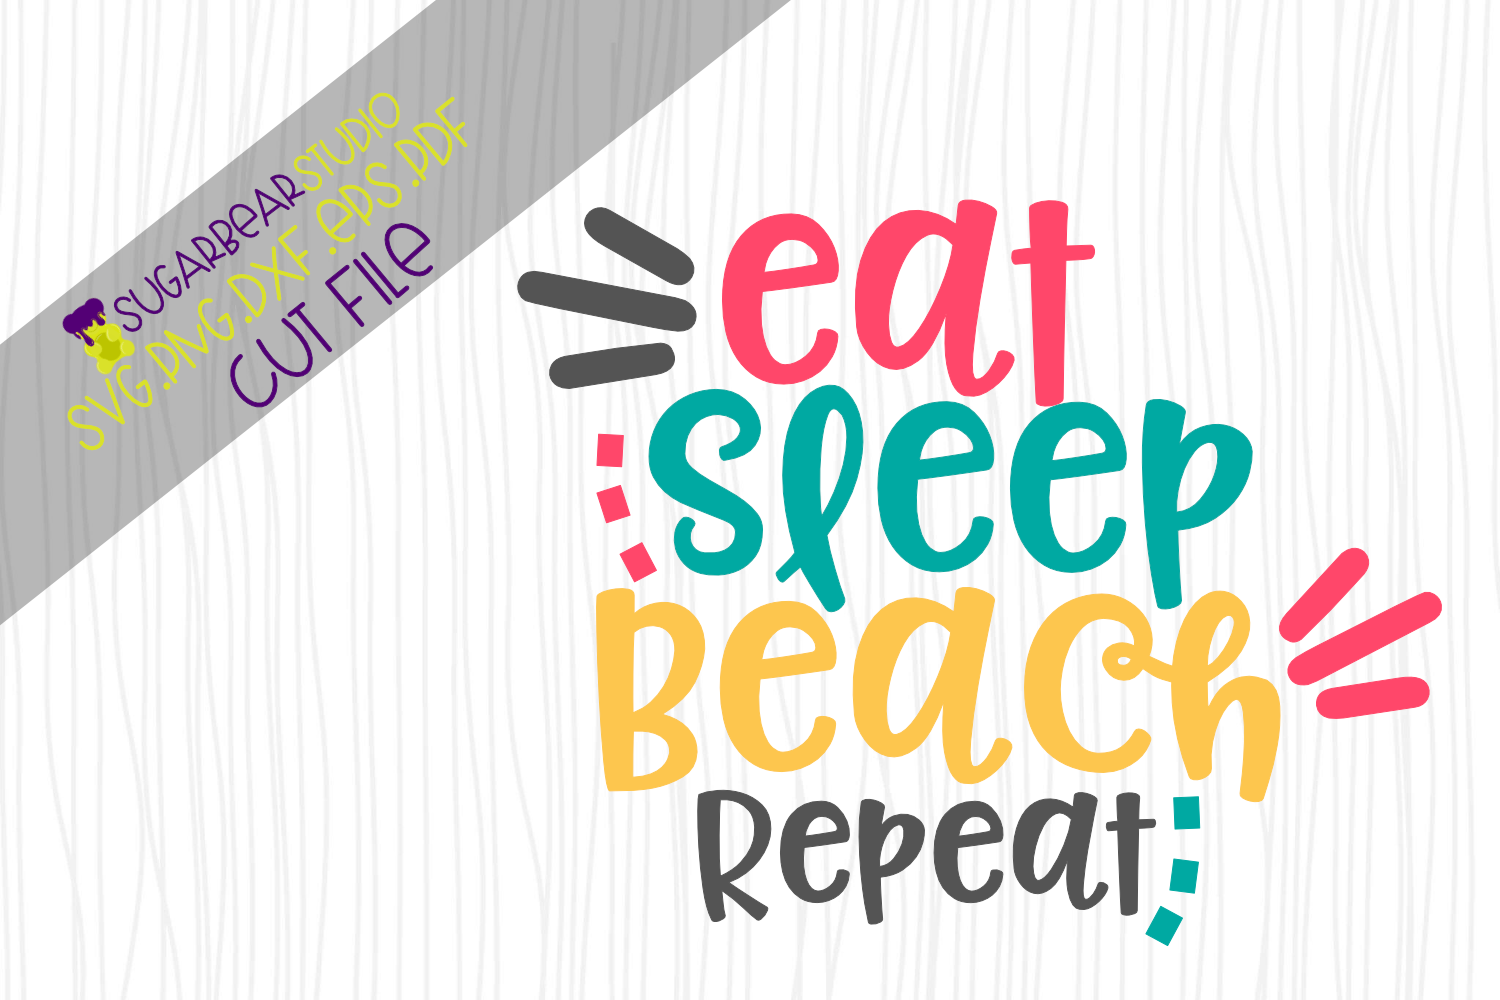 Download Free Eat Sleep Beach Repeat Svg Graphic By Sugarbearstudio Creative for Cricut Explore, Silhouette and other cutting machines.